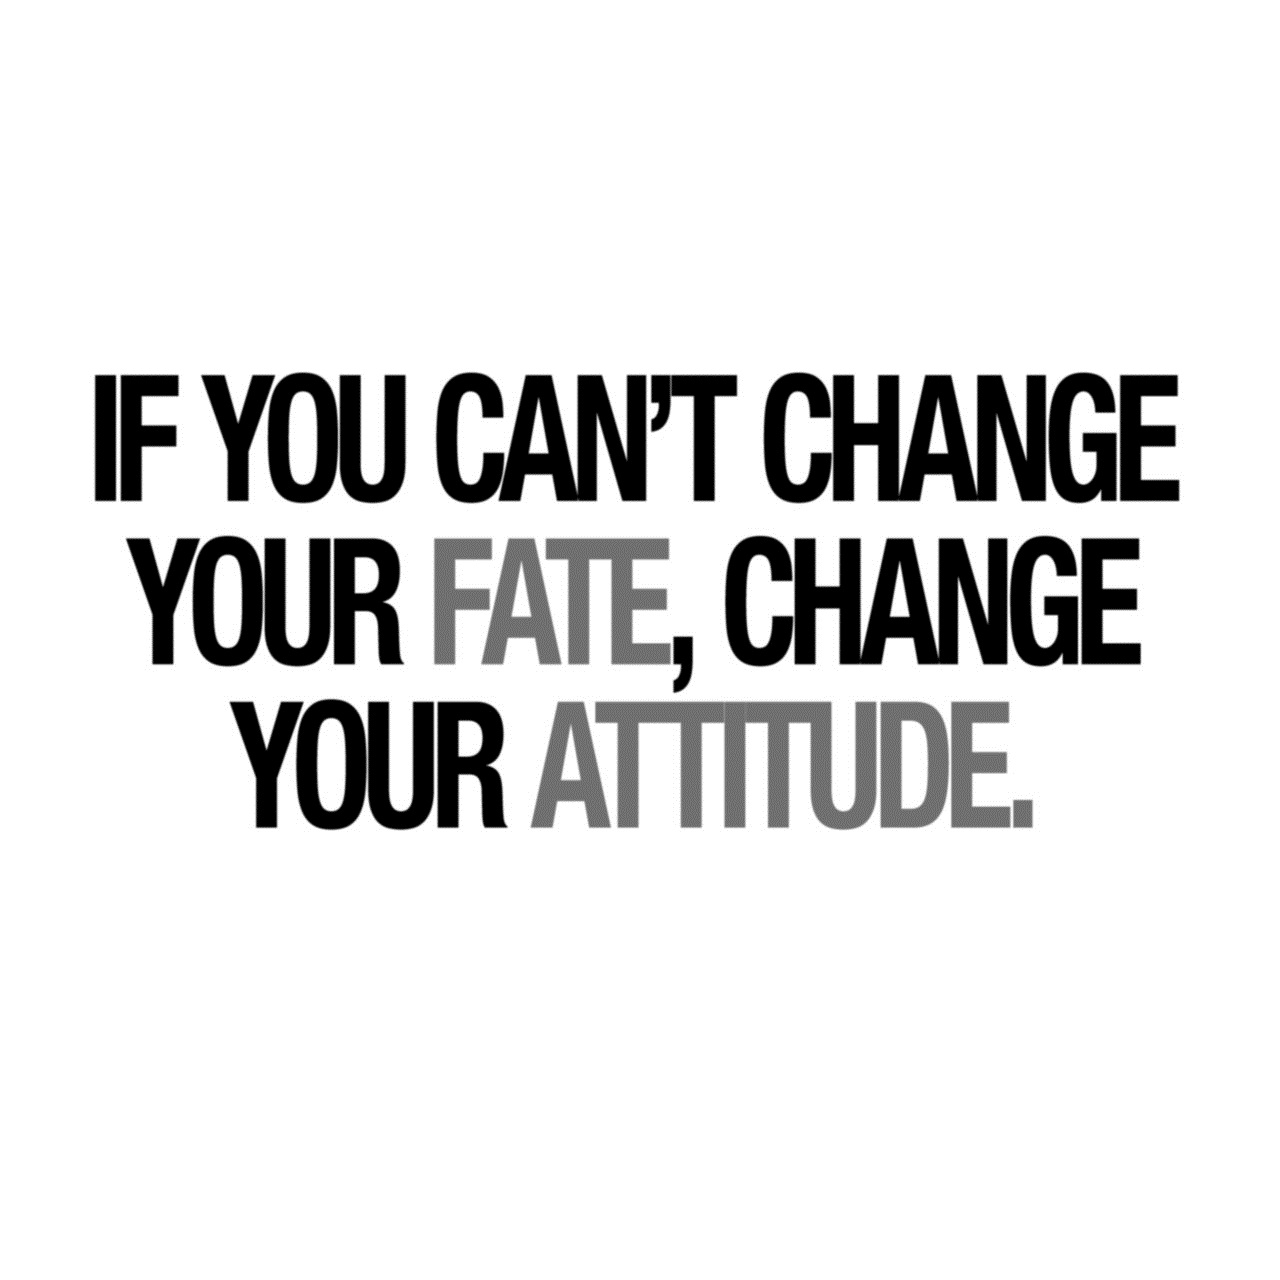 Funny And Positive Quotes: Funny Inspirational Quotes About Attitude. QuotesGram